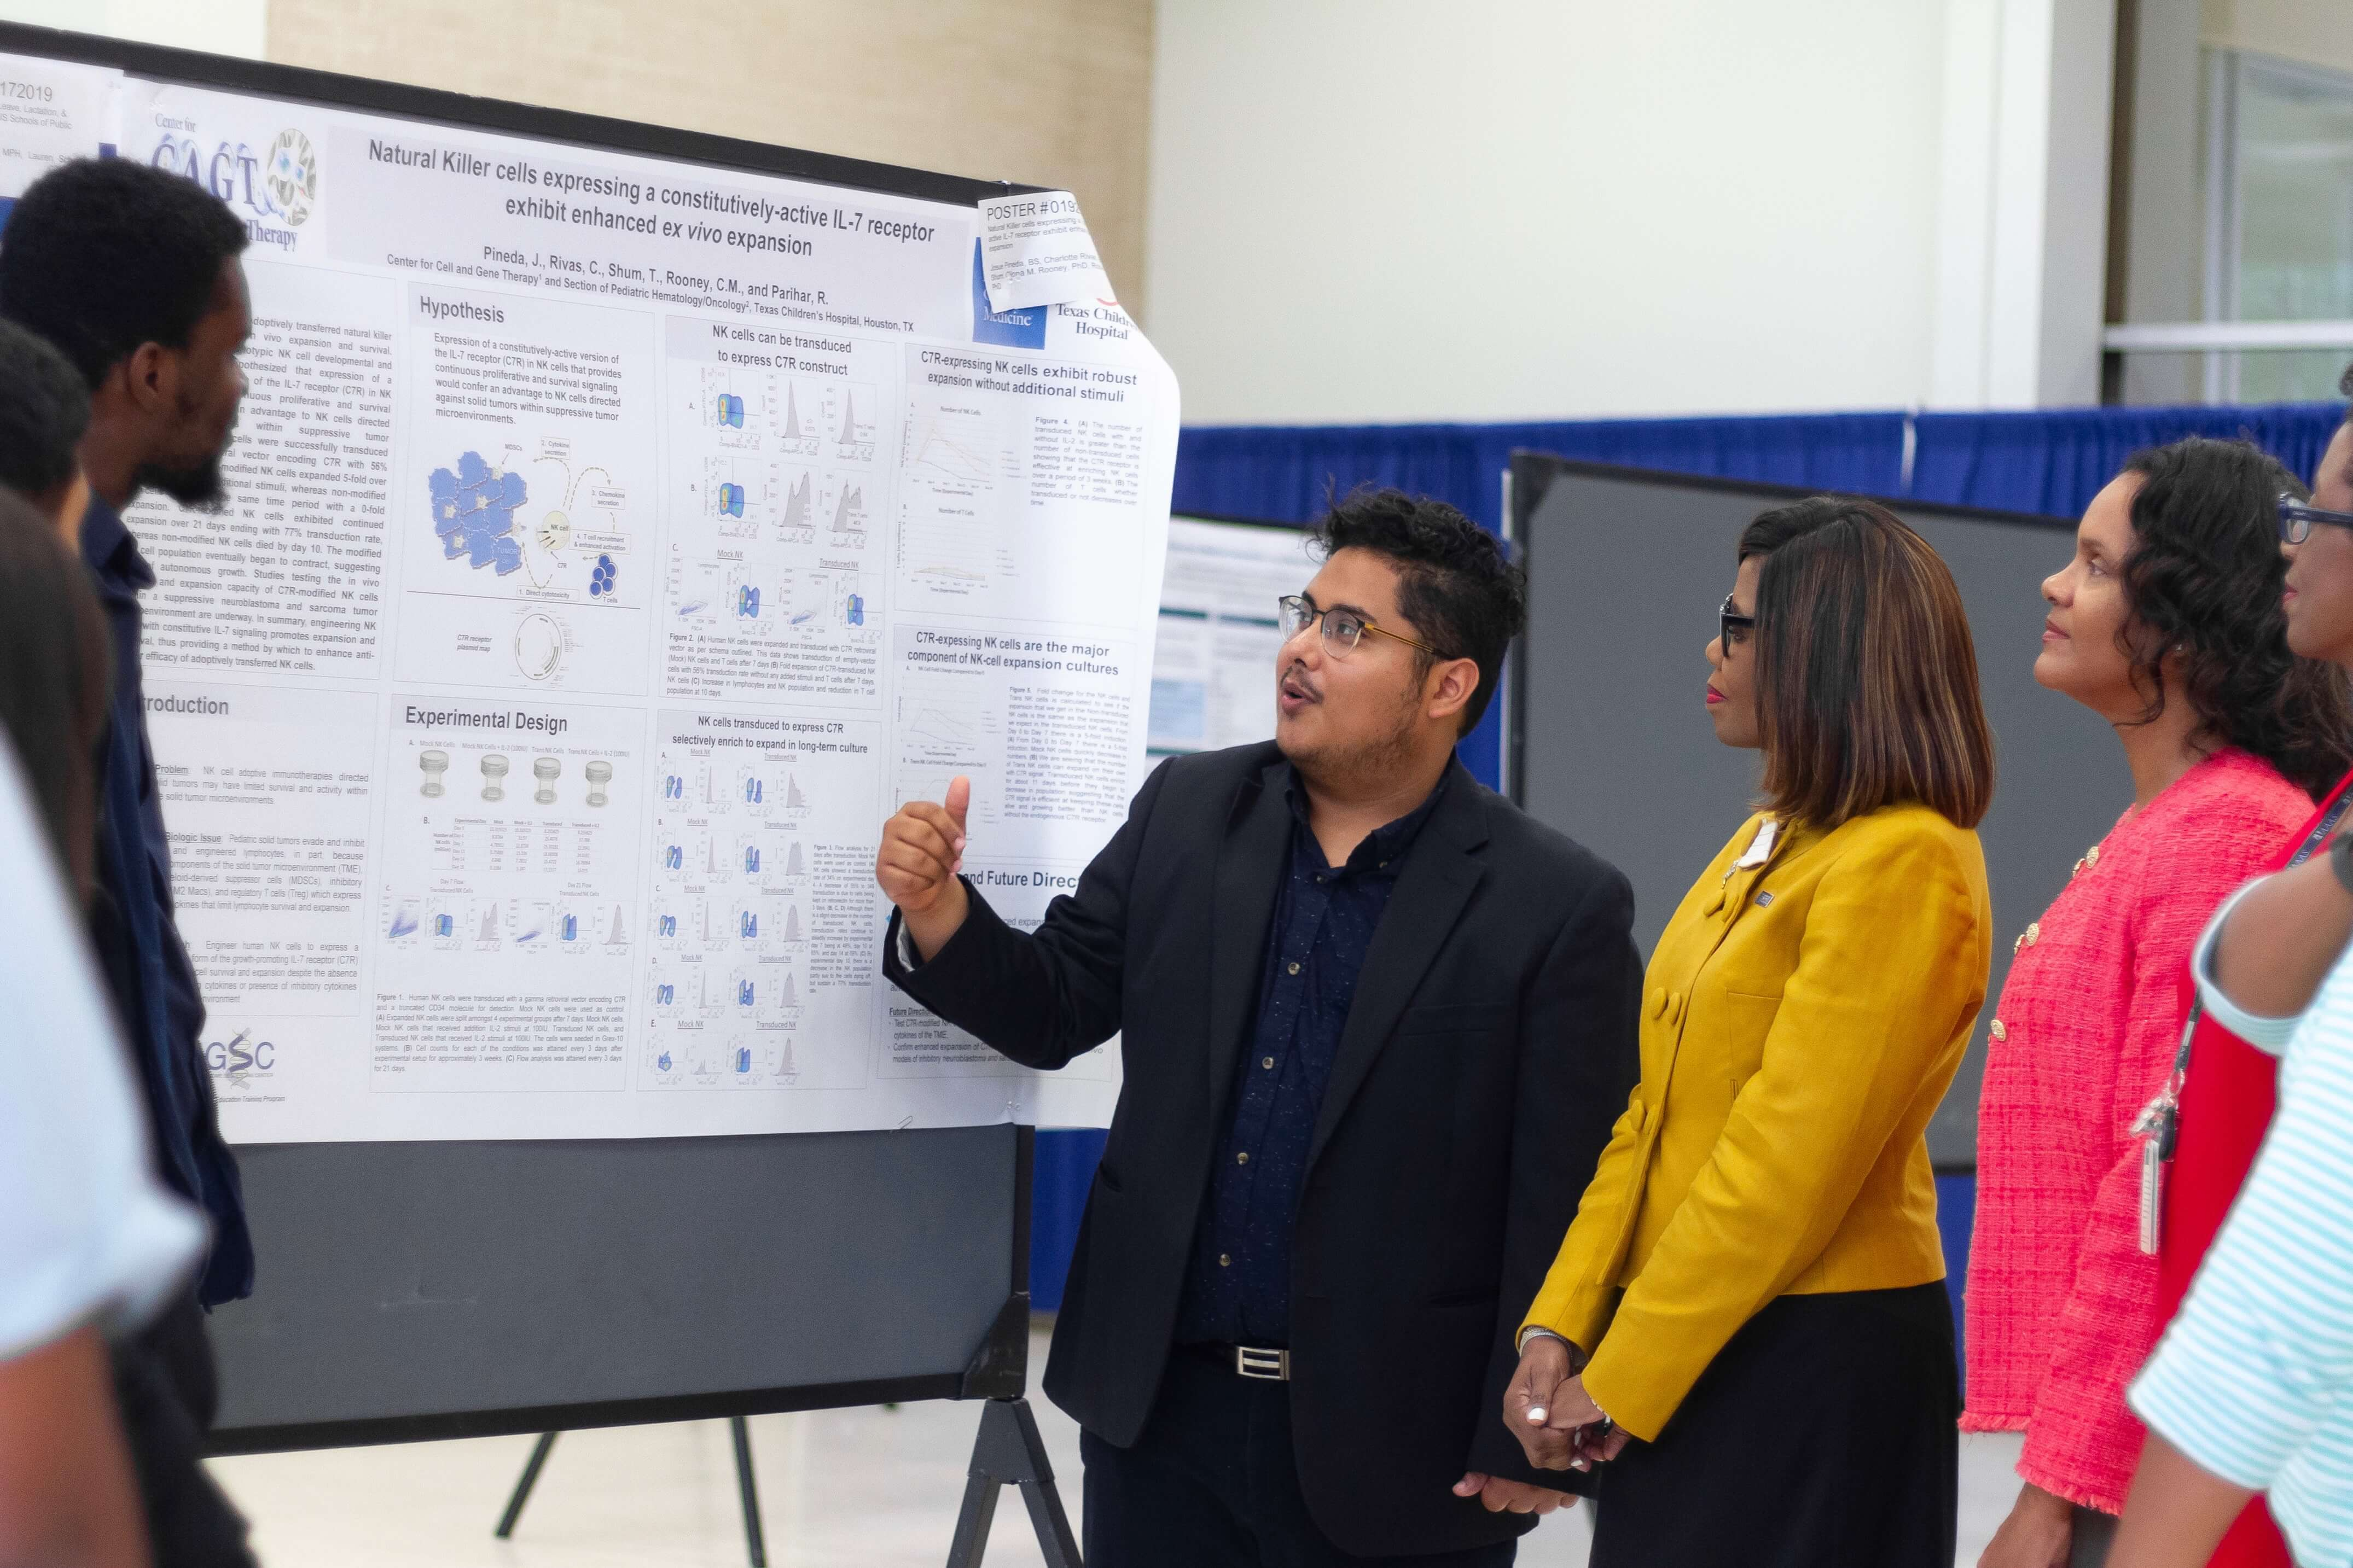 Patrice Harris, M.D., who became the 174th president of the American Medical Association in June 2019, listens to a student explain his poster presentation at Baylor College of Medicine on June 18, 2019. (Photo courtesy of Baylor College of Medicine)